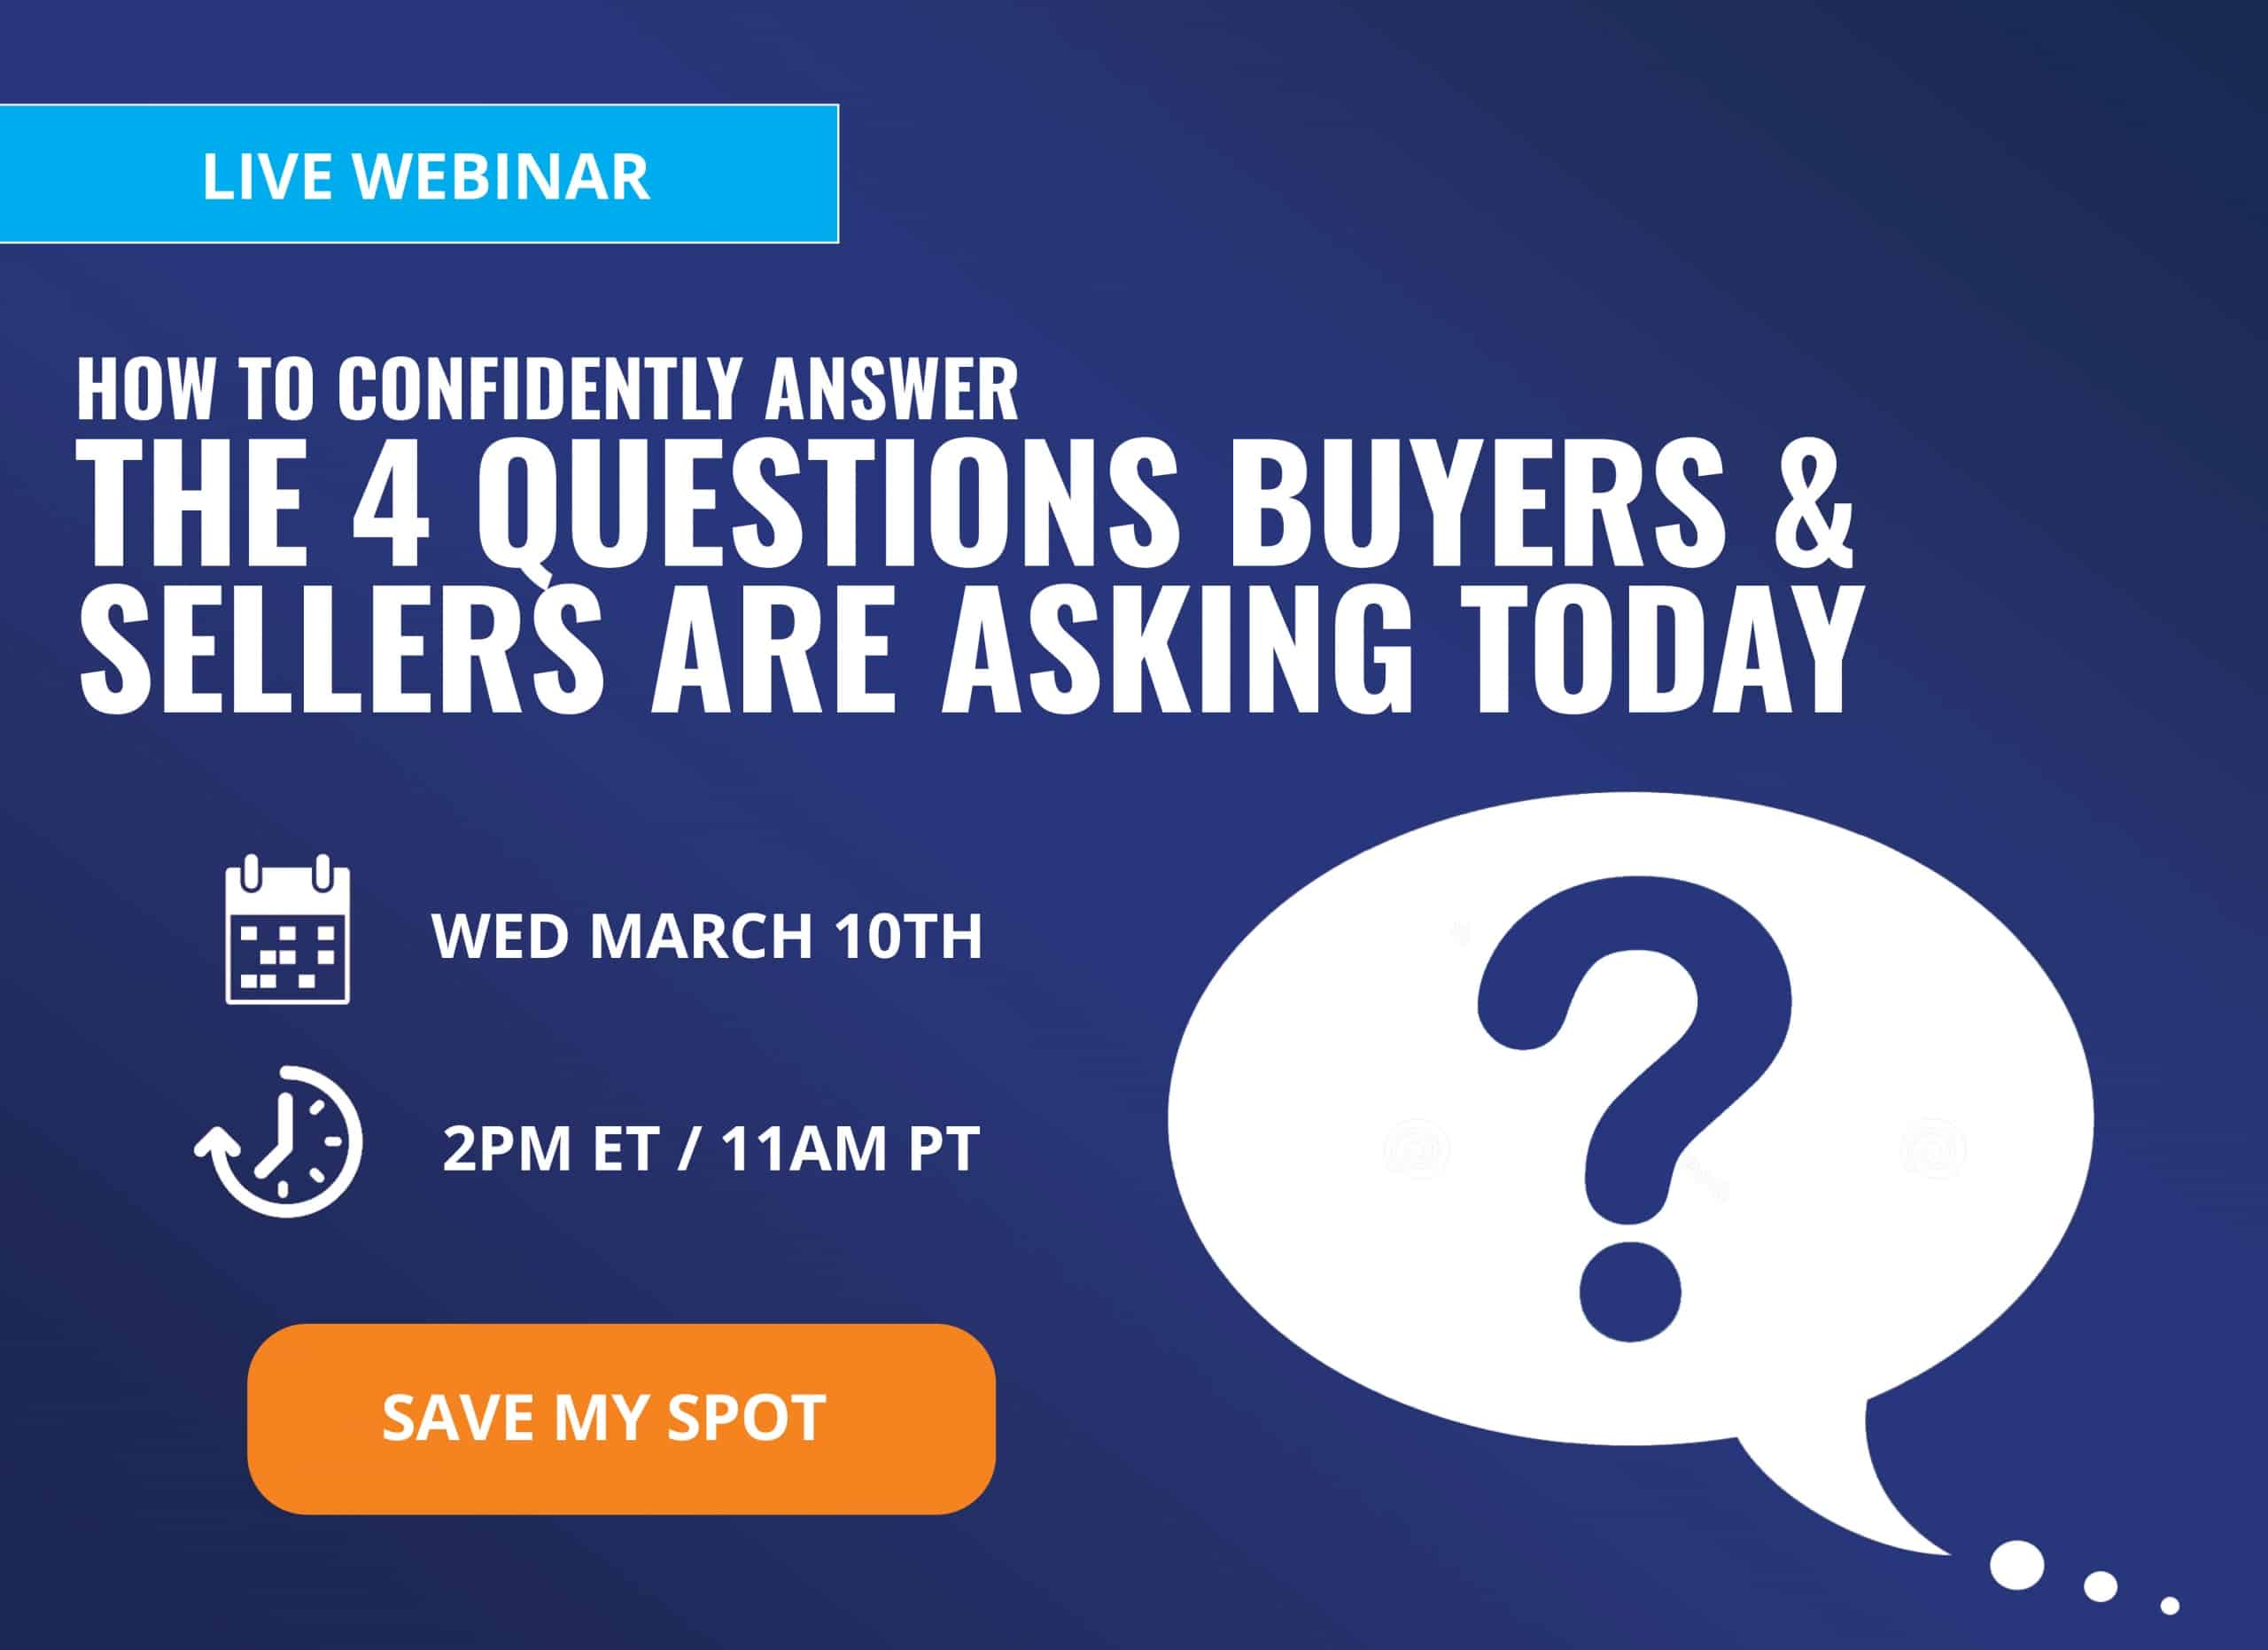 How to Confidently Answer the 4 Questions Buyers & Sellers Are Asking Today [LIVE WEBINAR]